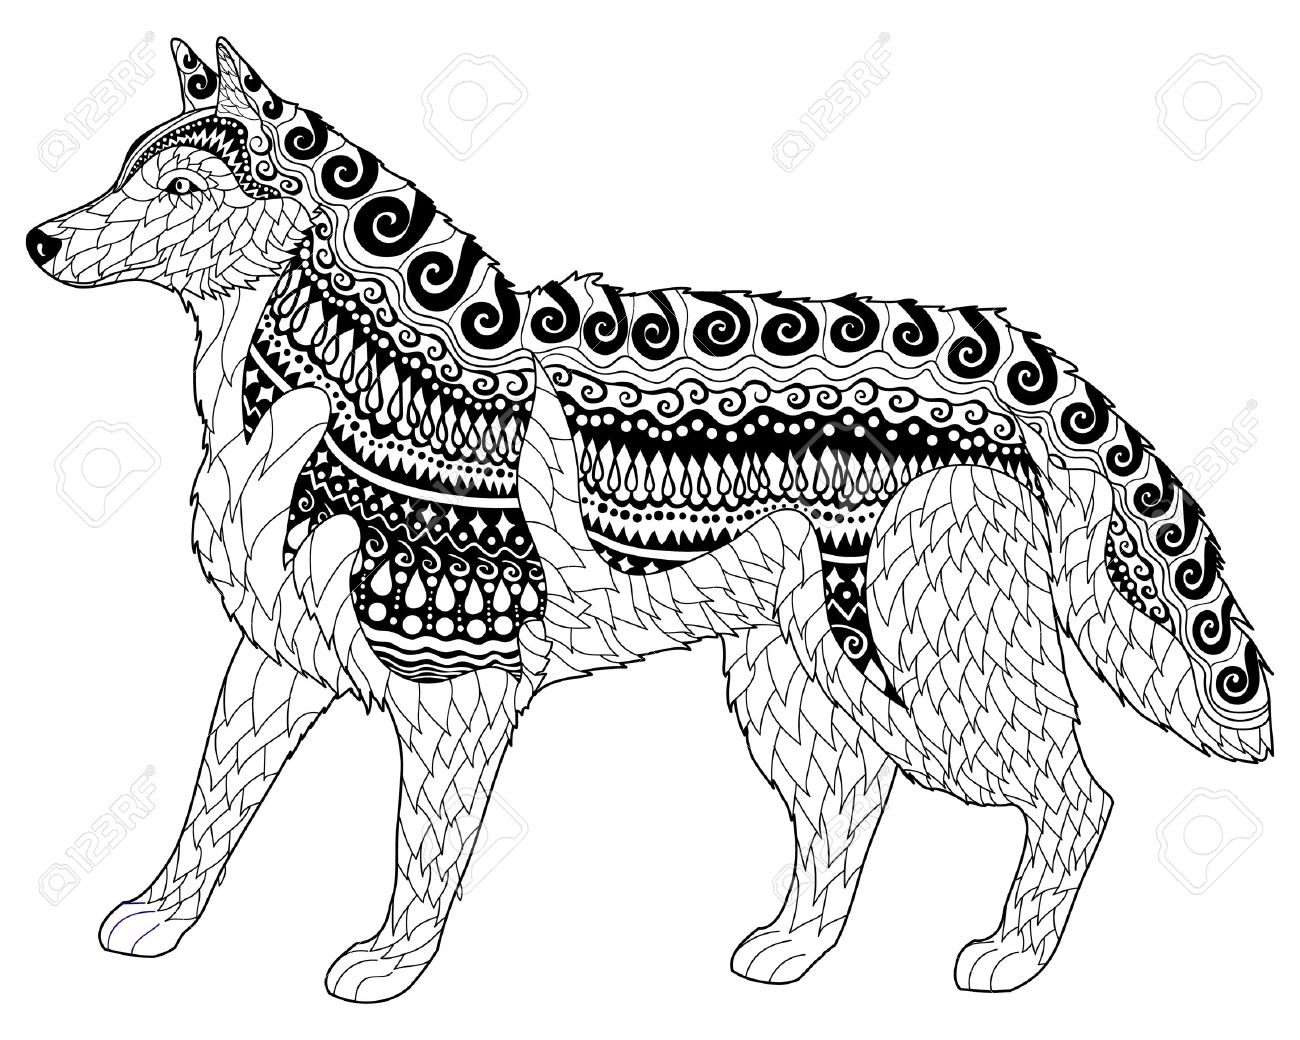 Siberian Husky With High Details Adult Antistress Or Children Coloring Page Dog Hand